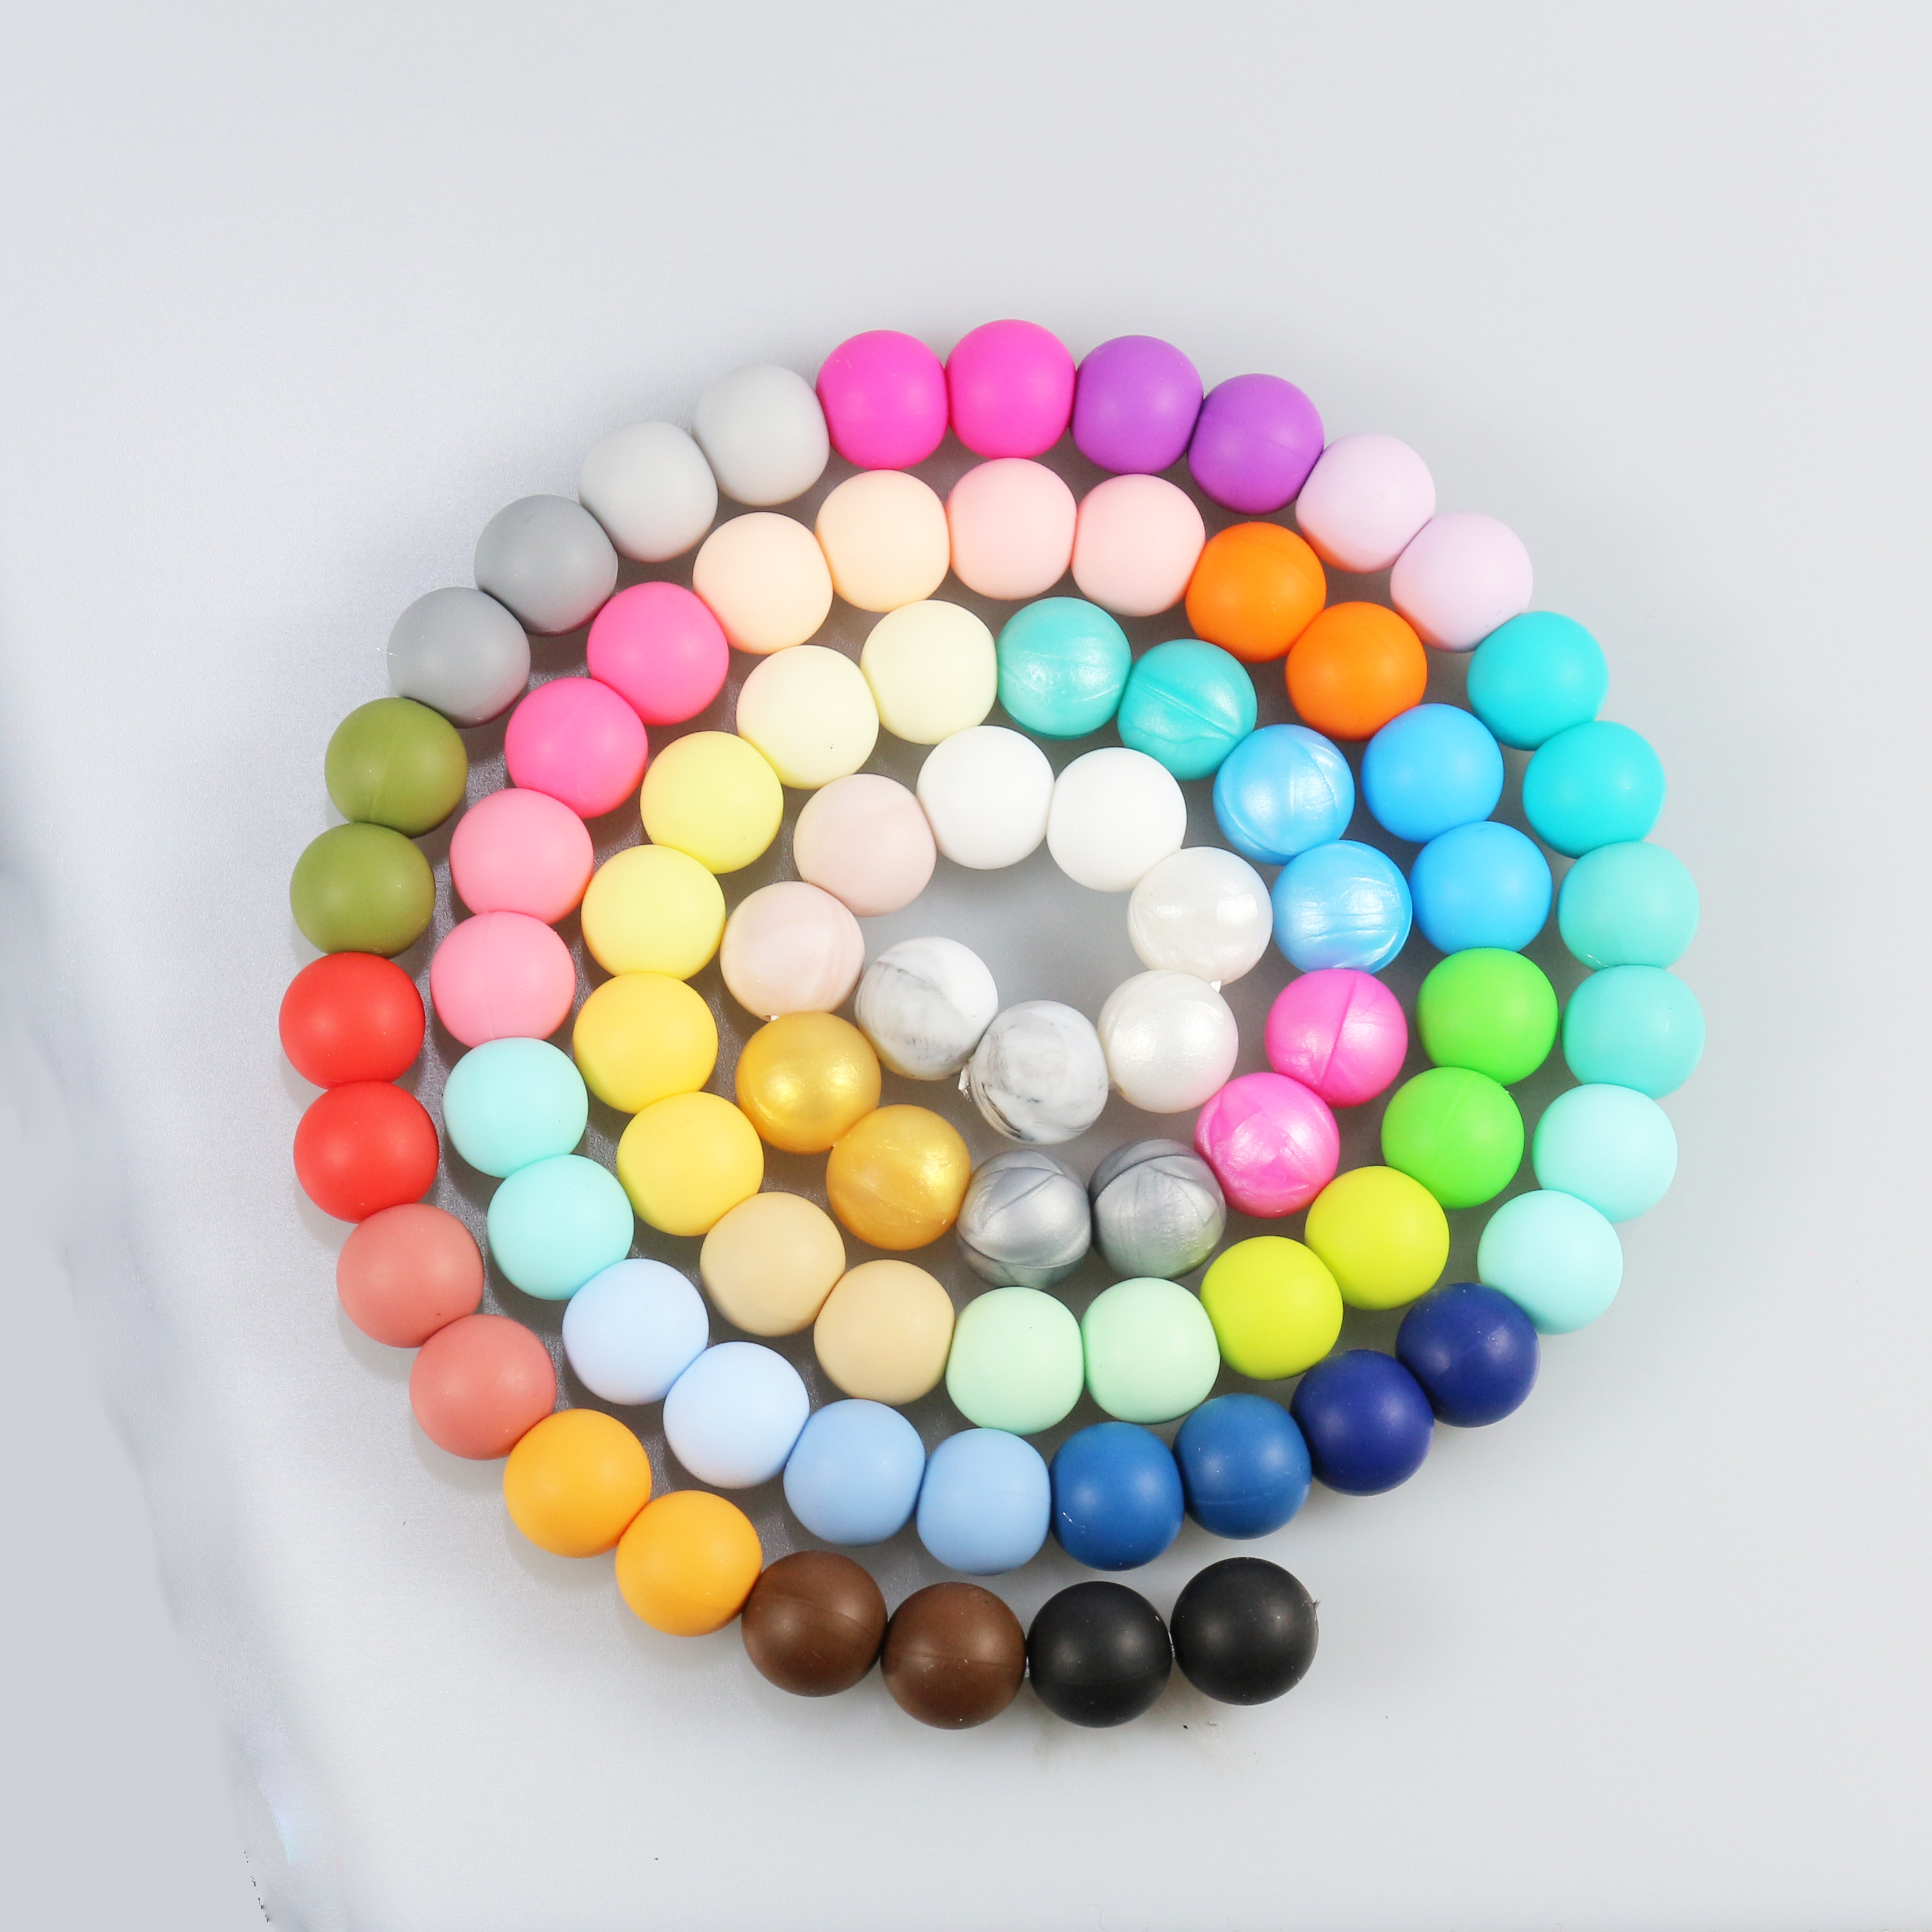 10 silicone METALLIC SILVER 12mm beads round BPA free baby teething jewellery